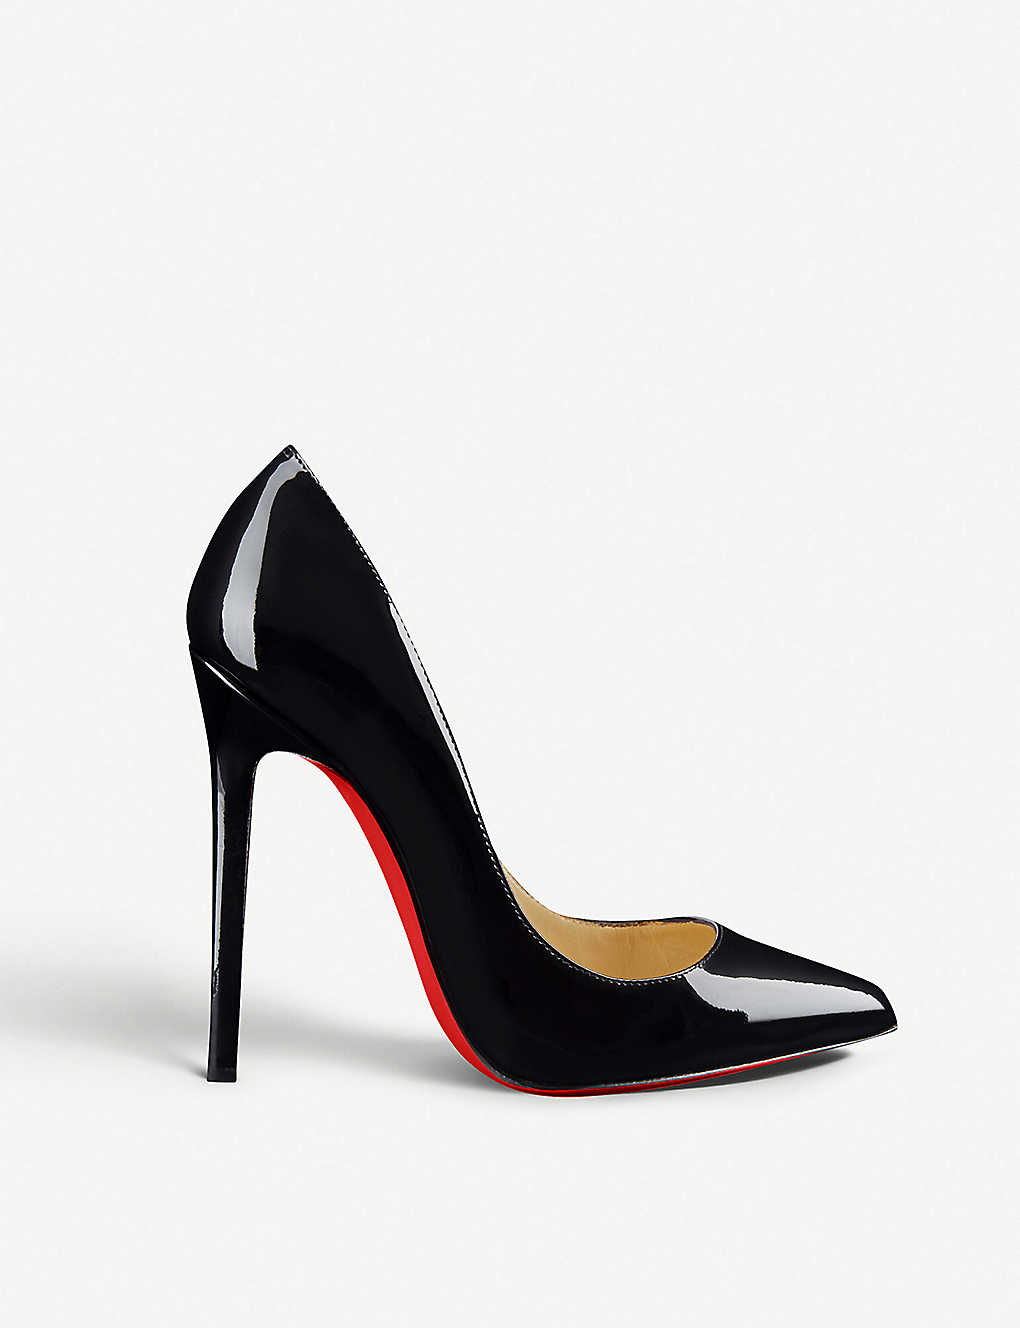 christian louboutin shoes price